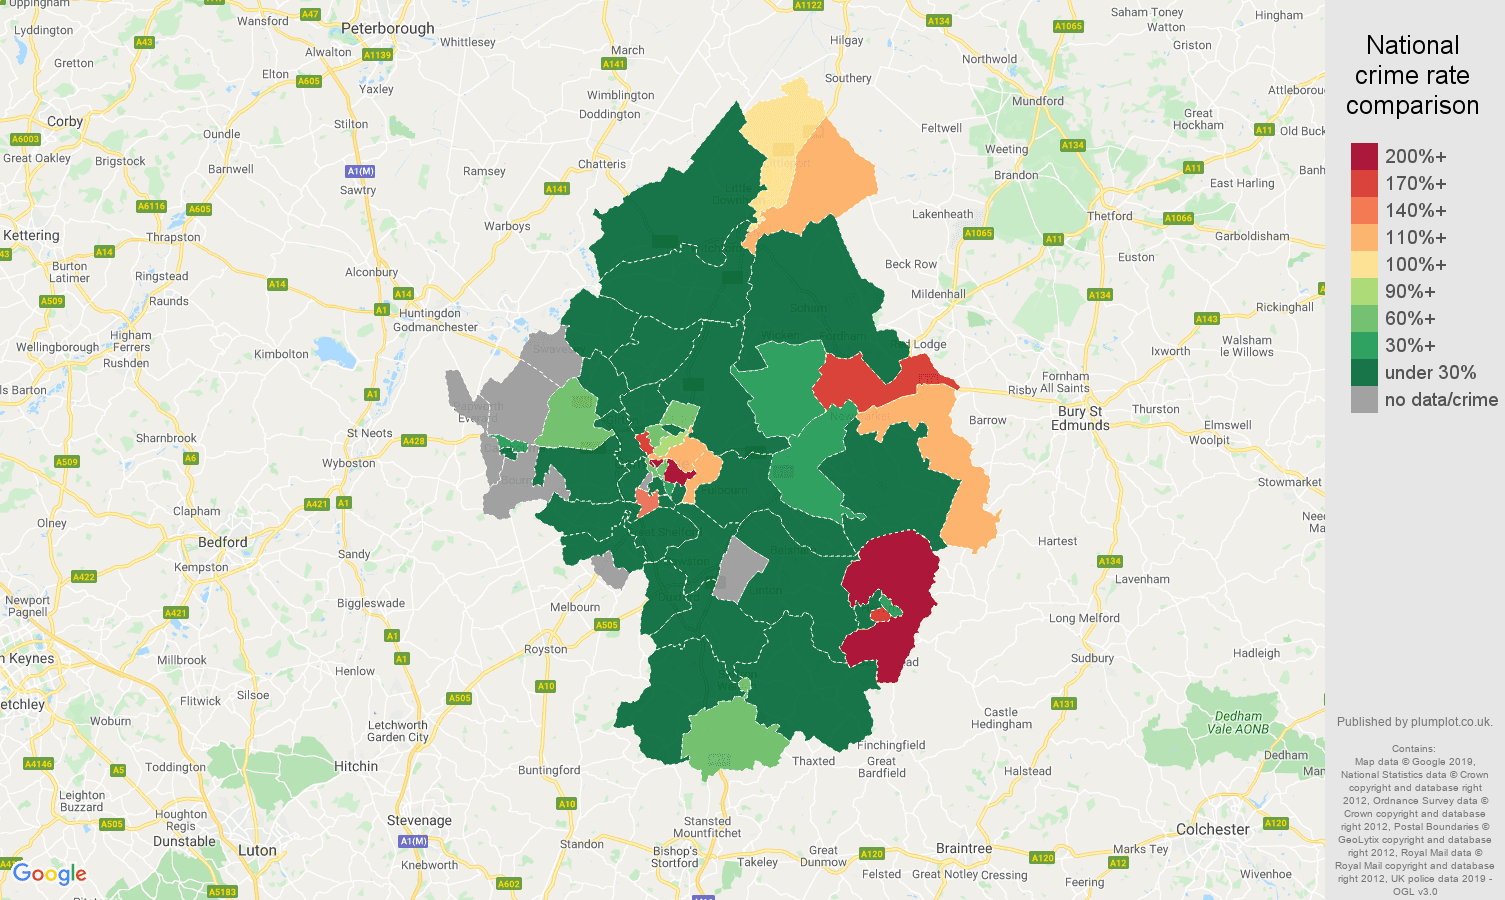 Cambridge shoplifting crime rate comparison map